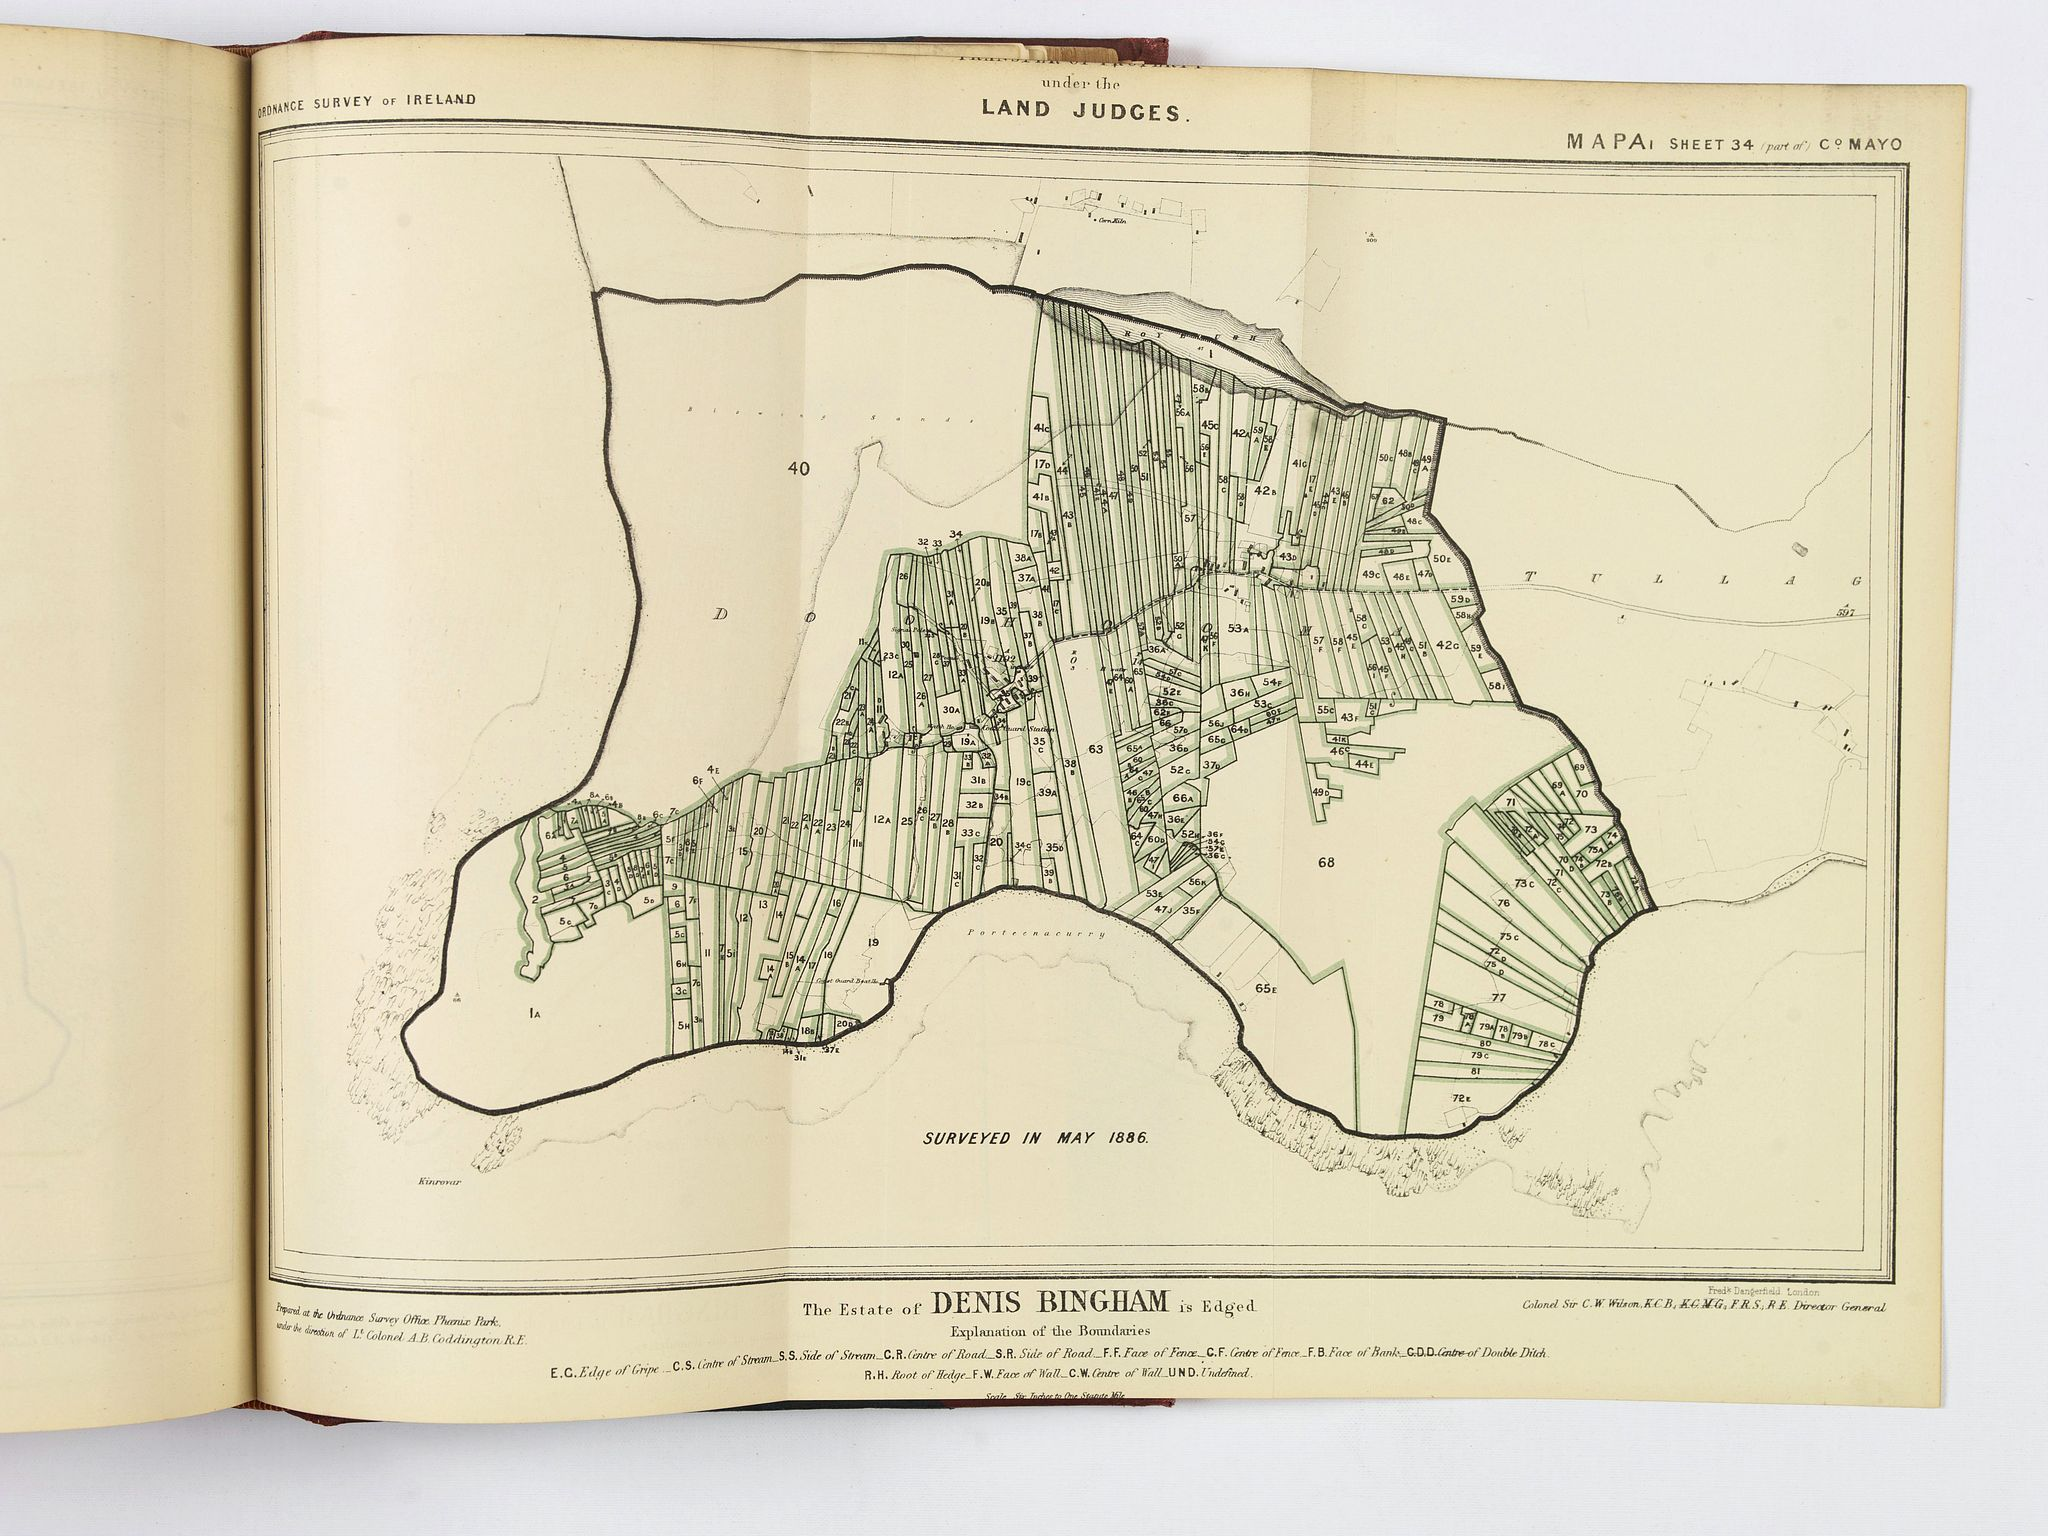 H.M. STATIONARY OFFICE. - [Atlas] Report of the Royal Commission on The Land Law (Ireland) Act, 1881, & The Purchase of Land (Ireland) Act, 1885,